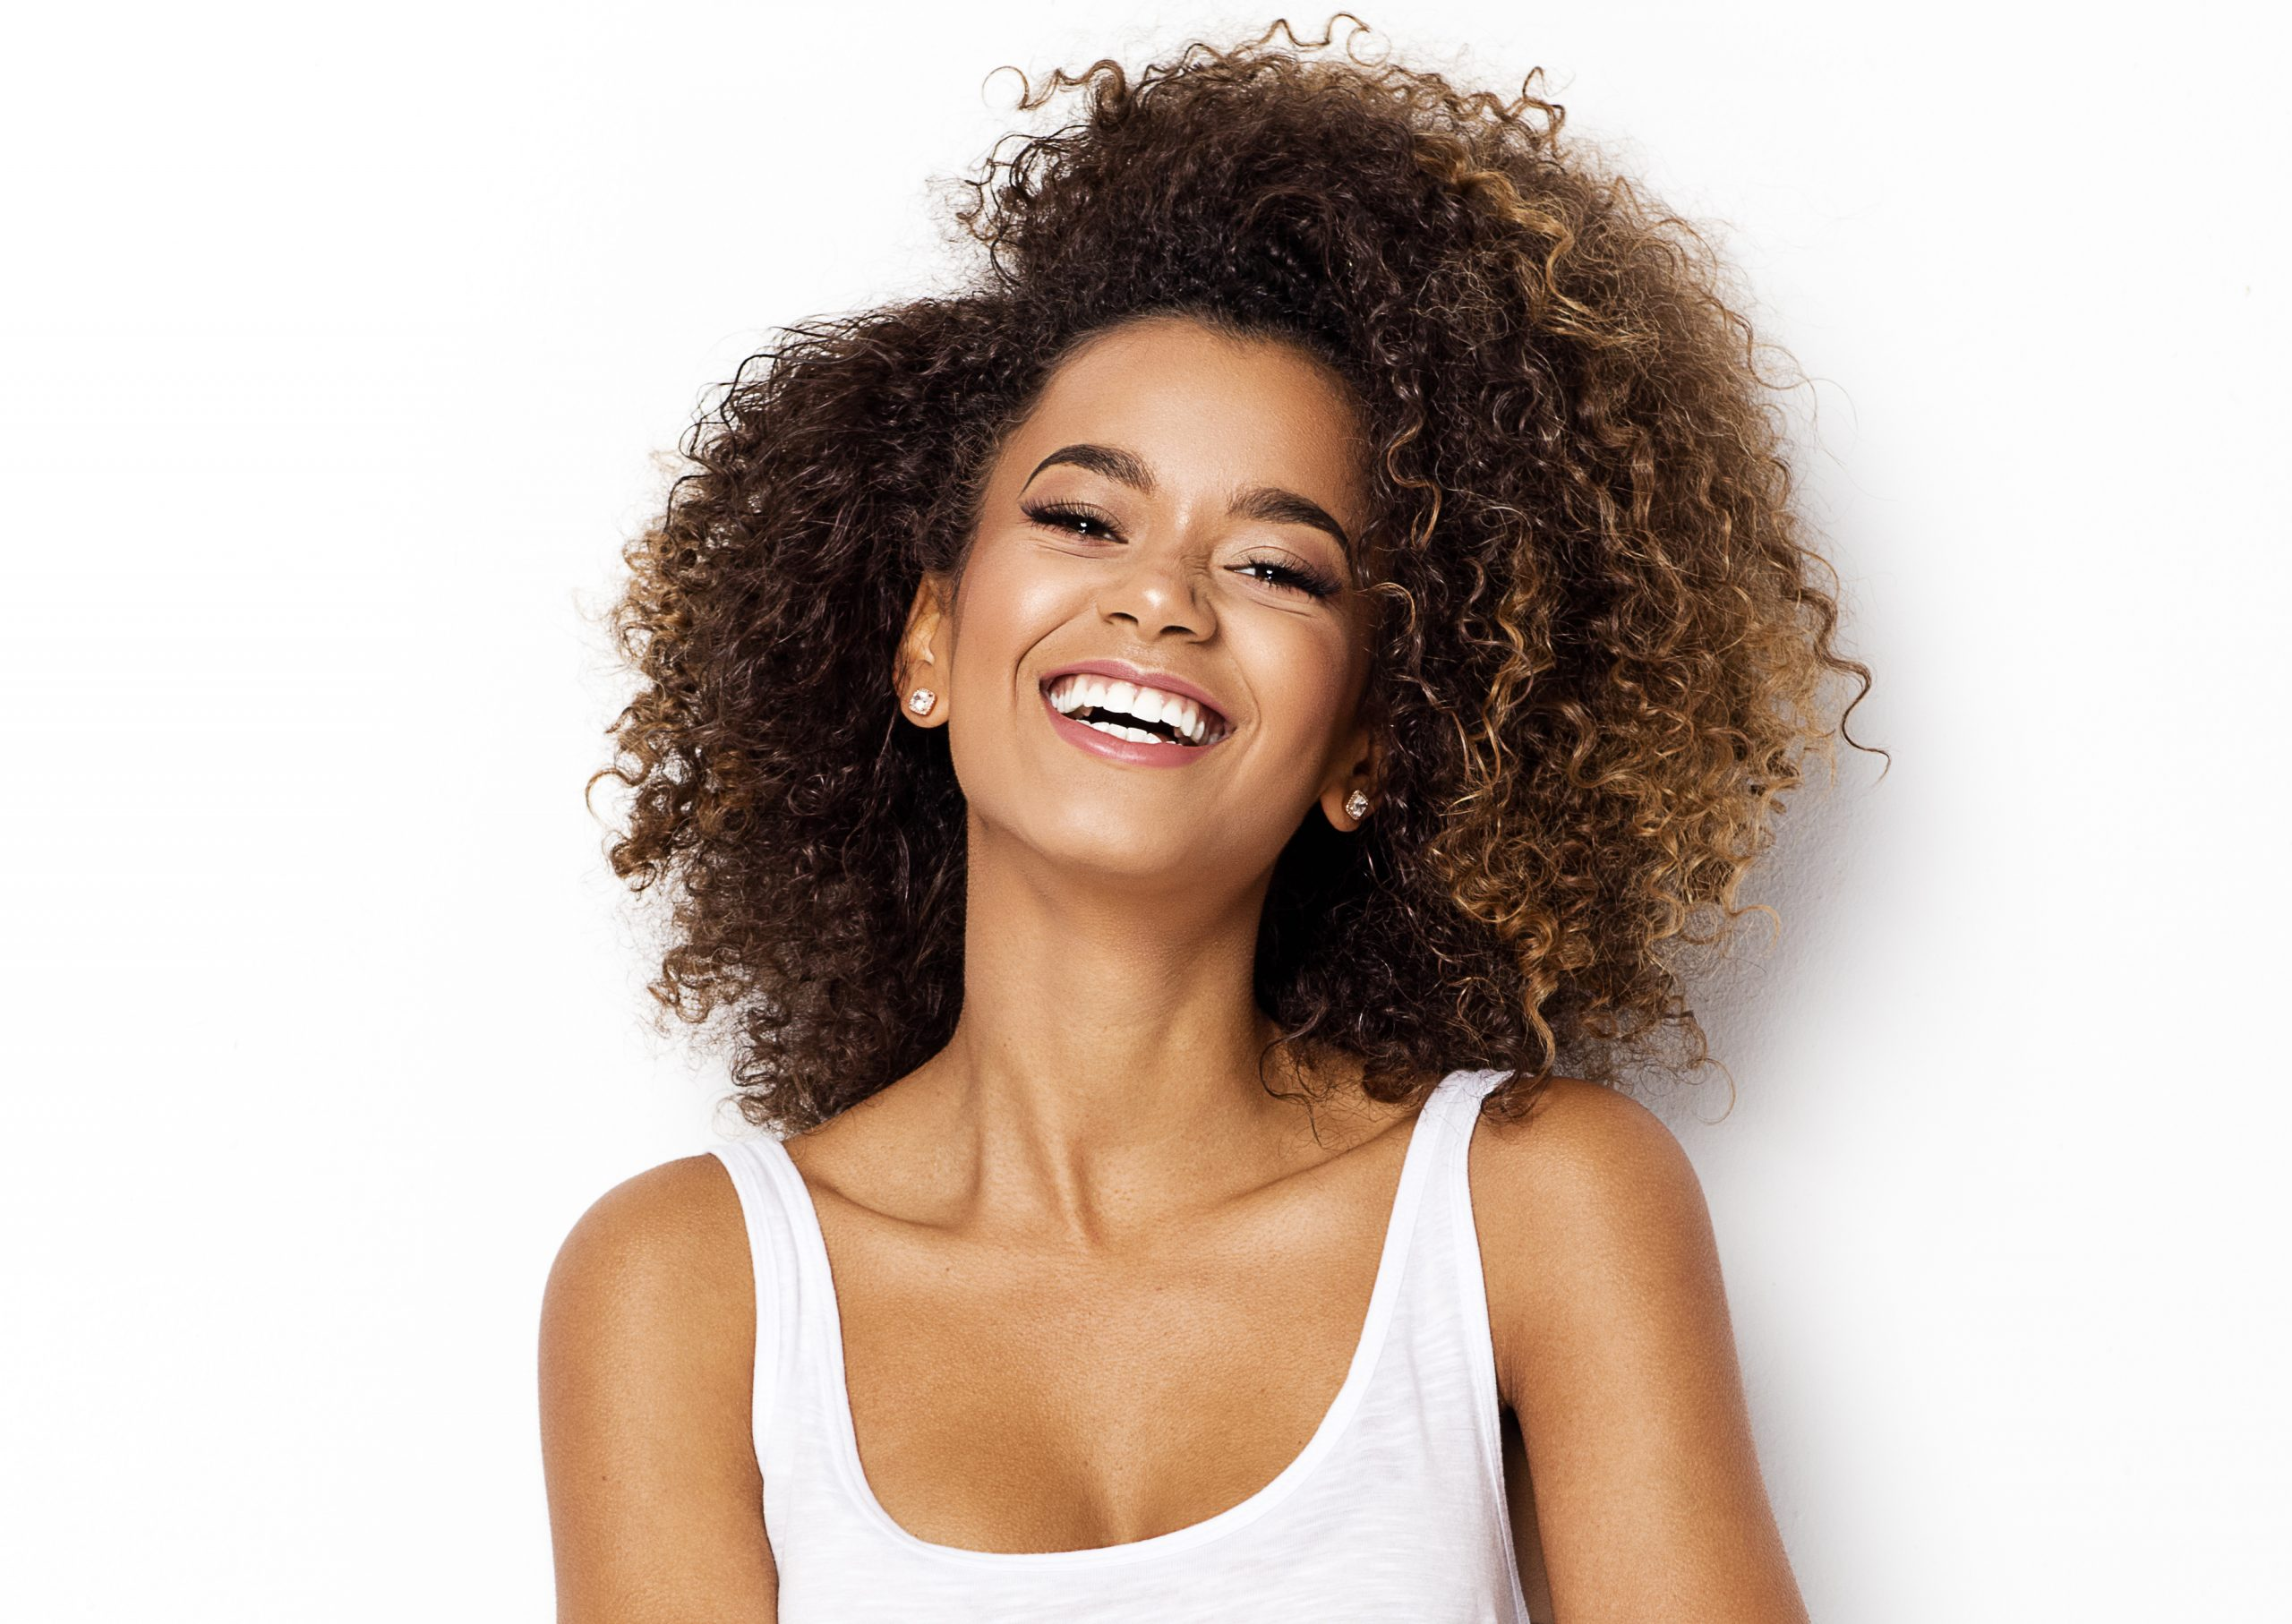 Gummy Smile Correction With Veneers - Harley Street Smile Clinic